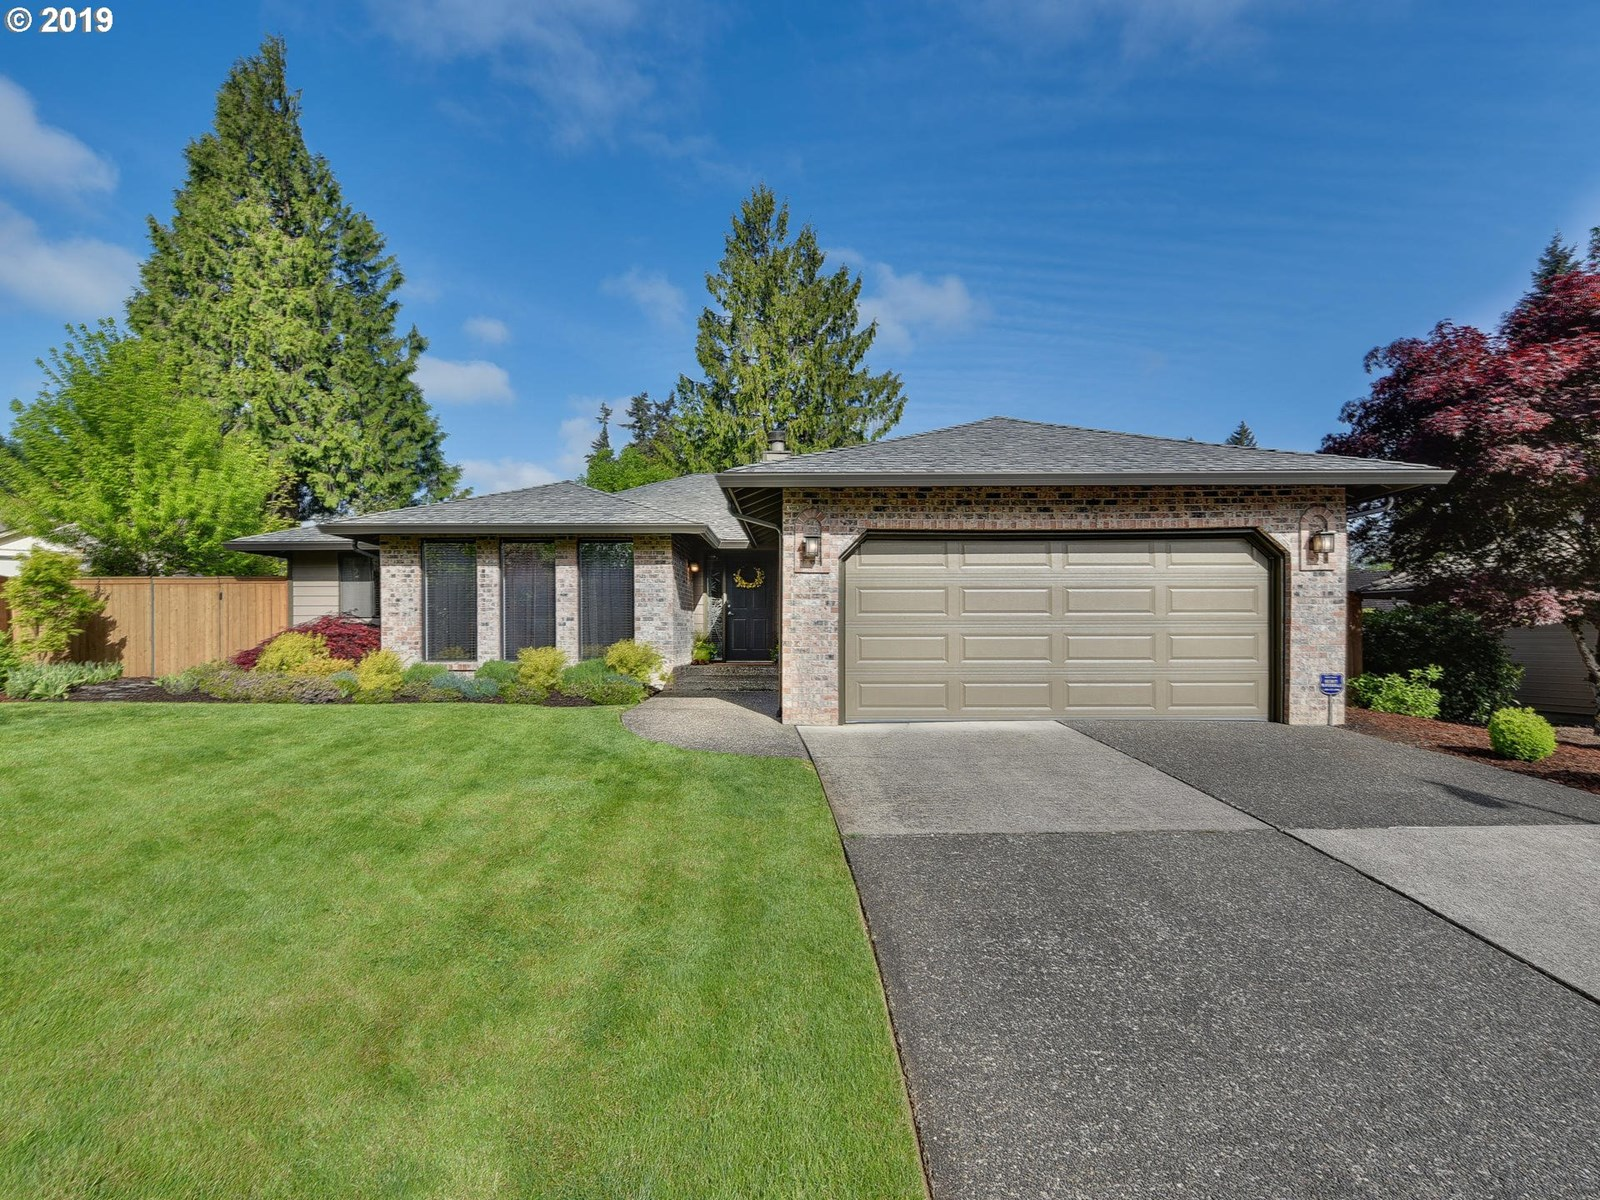 Ranch style home for sale in Vancouver WA